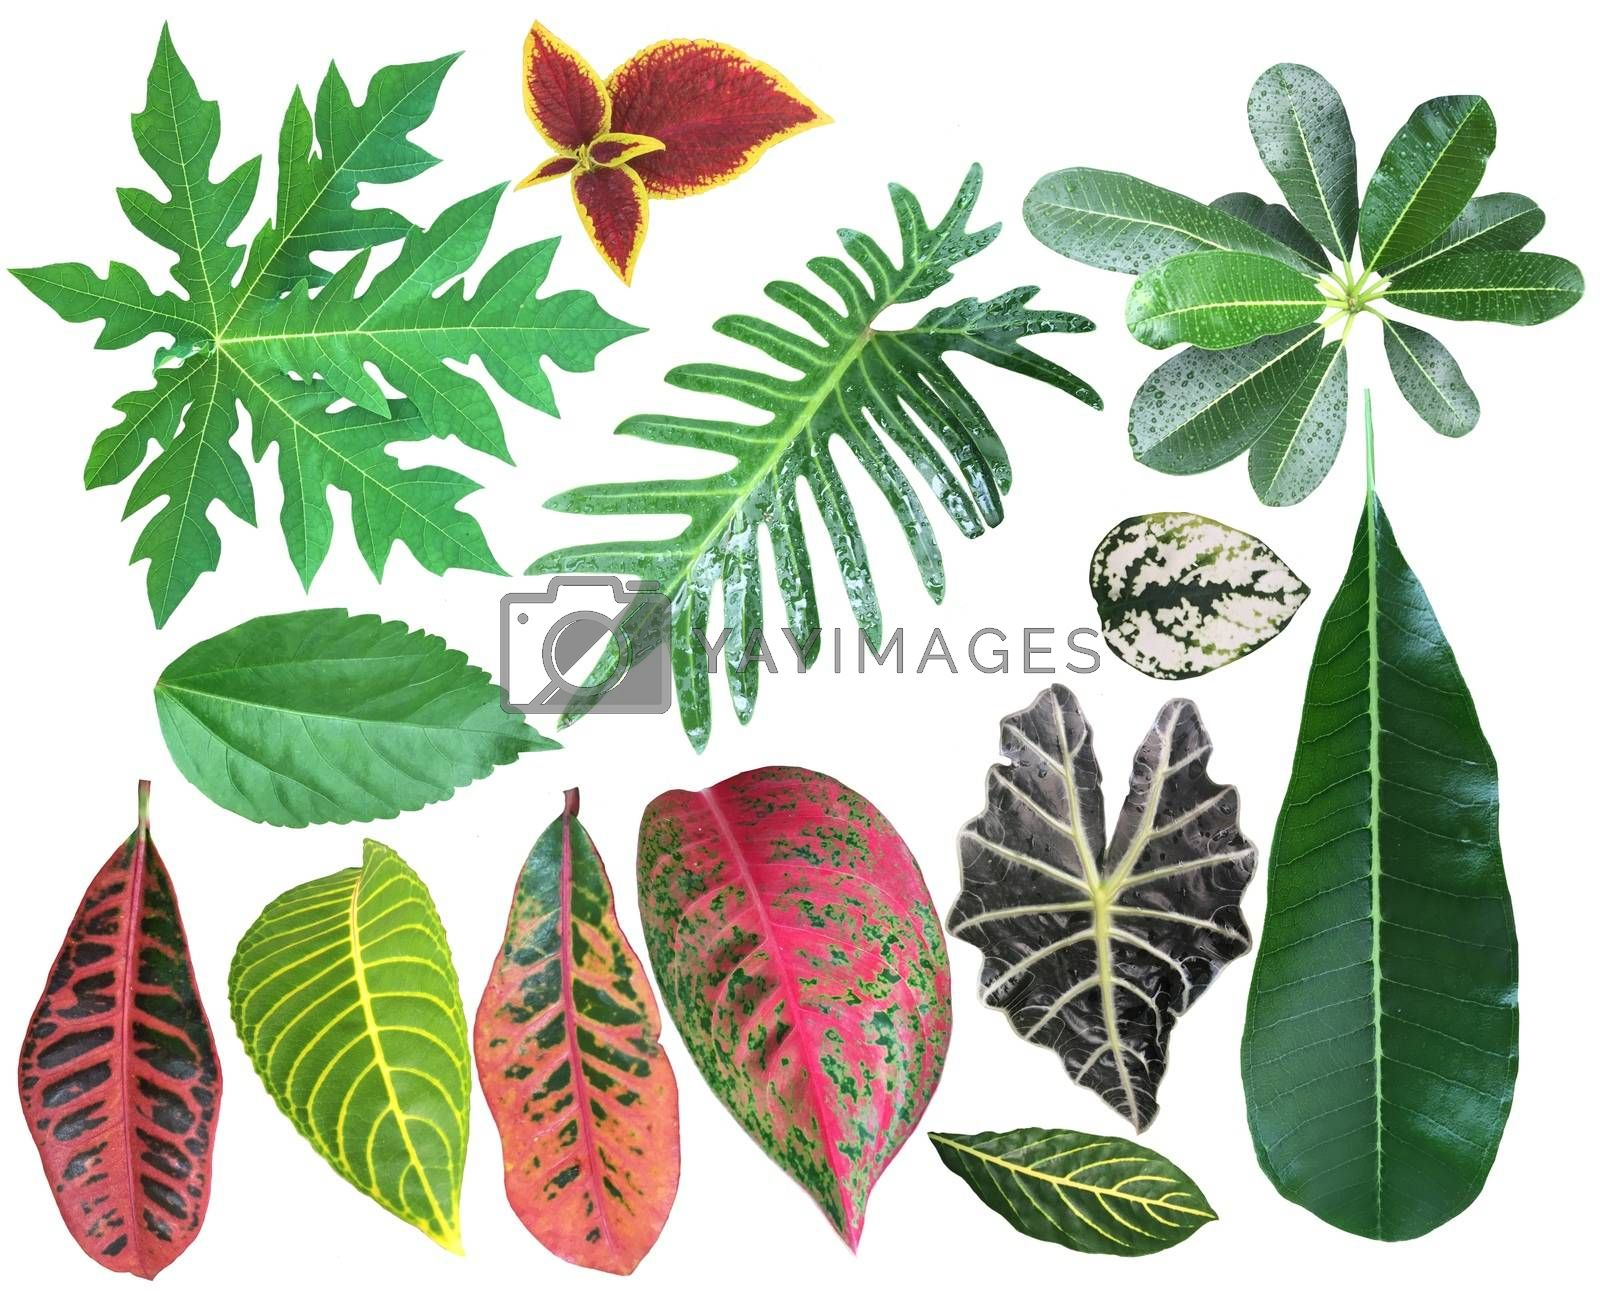 Set of tropical green leaves isolated on white background. Collection of Different exotic houseplants leaves.